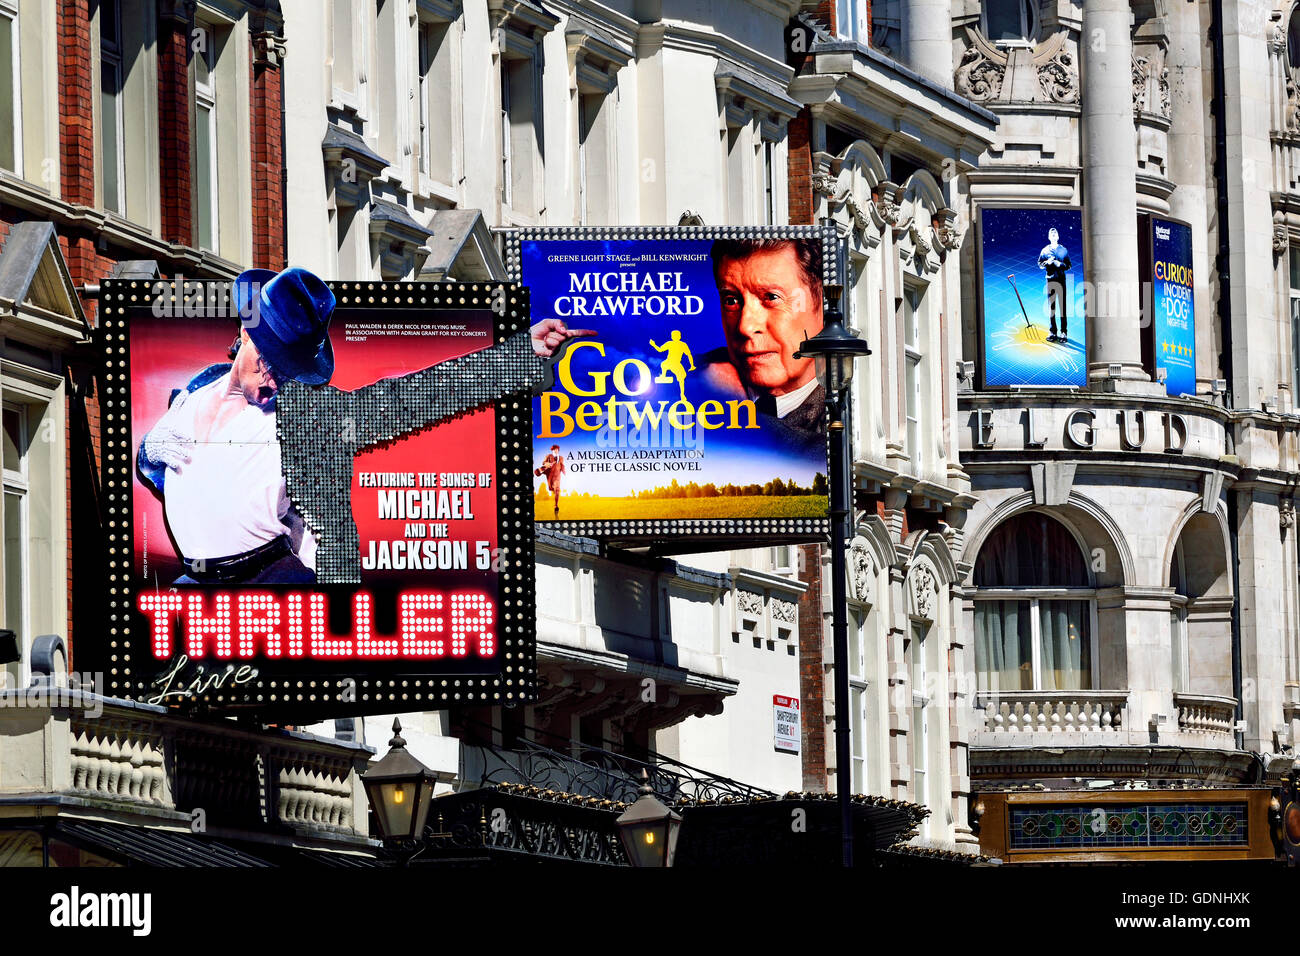 London, England, UK. Shaftesbury Avenue - 'Thriller' at the Lyric Theatre; The Go-Between at the Apollo; - Stock Image